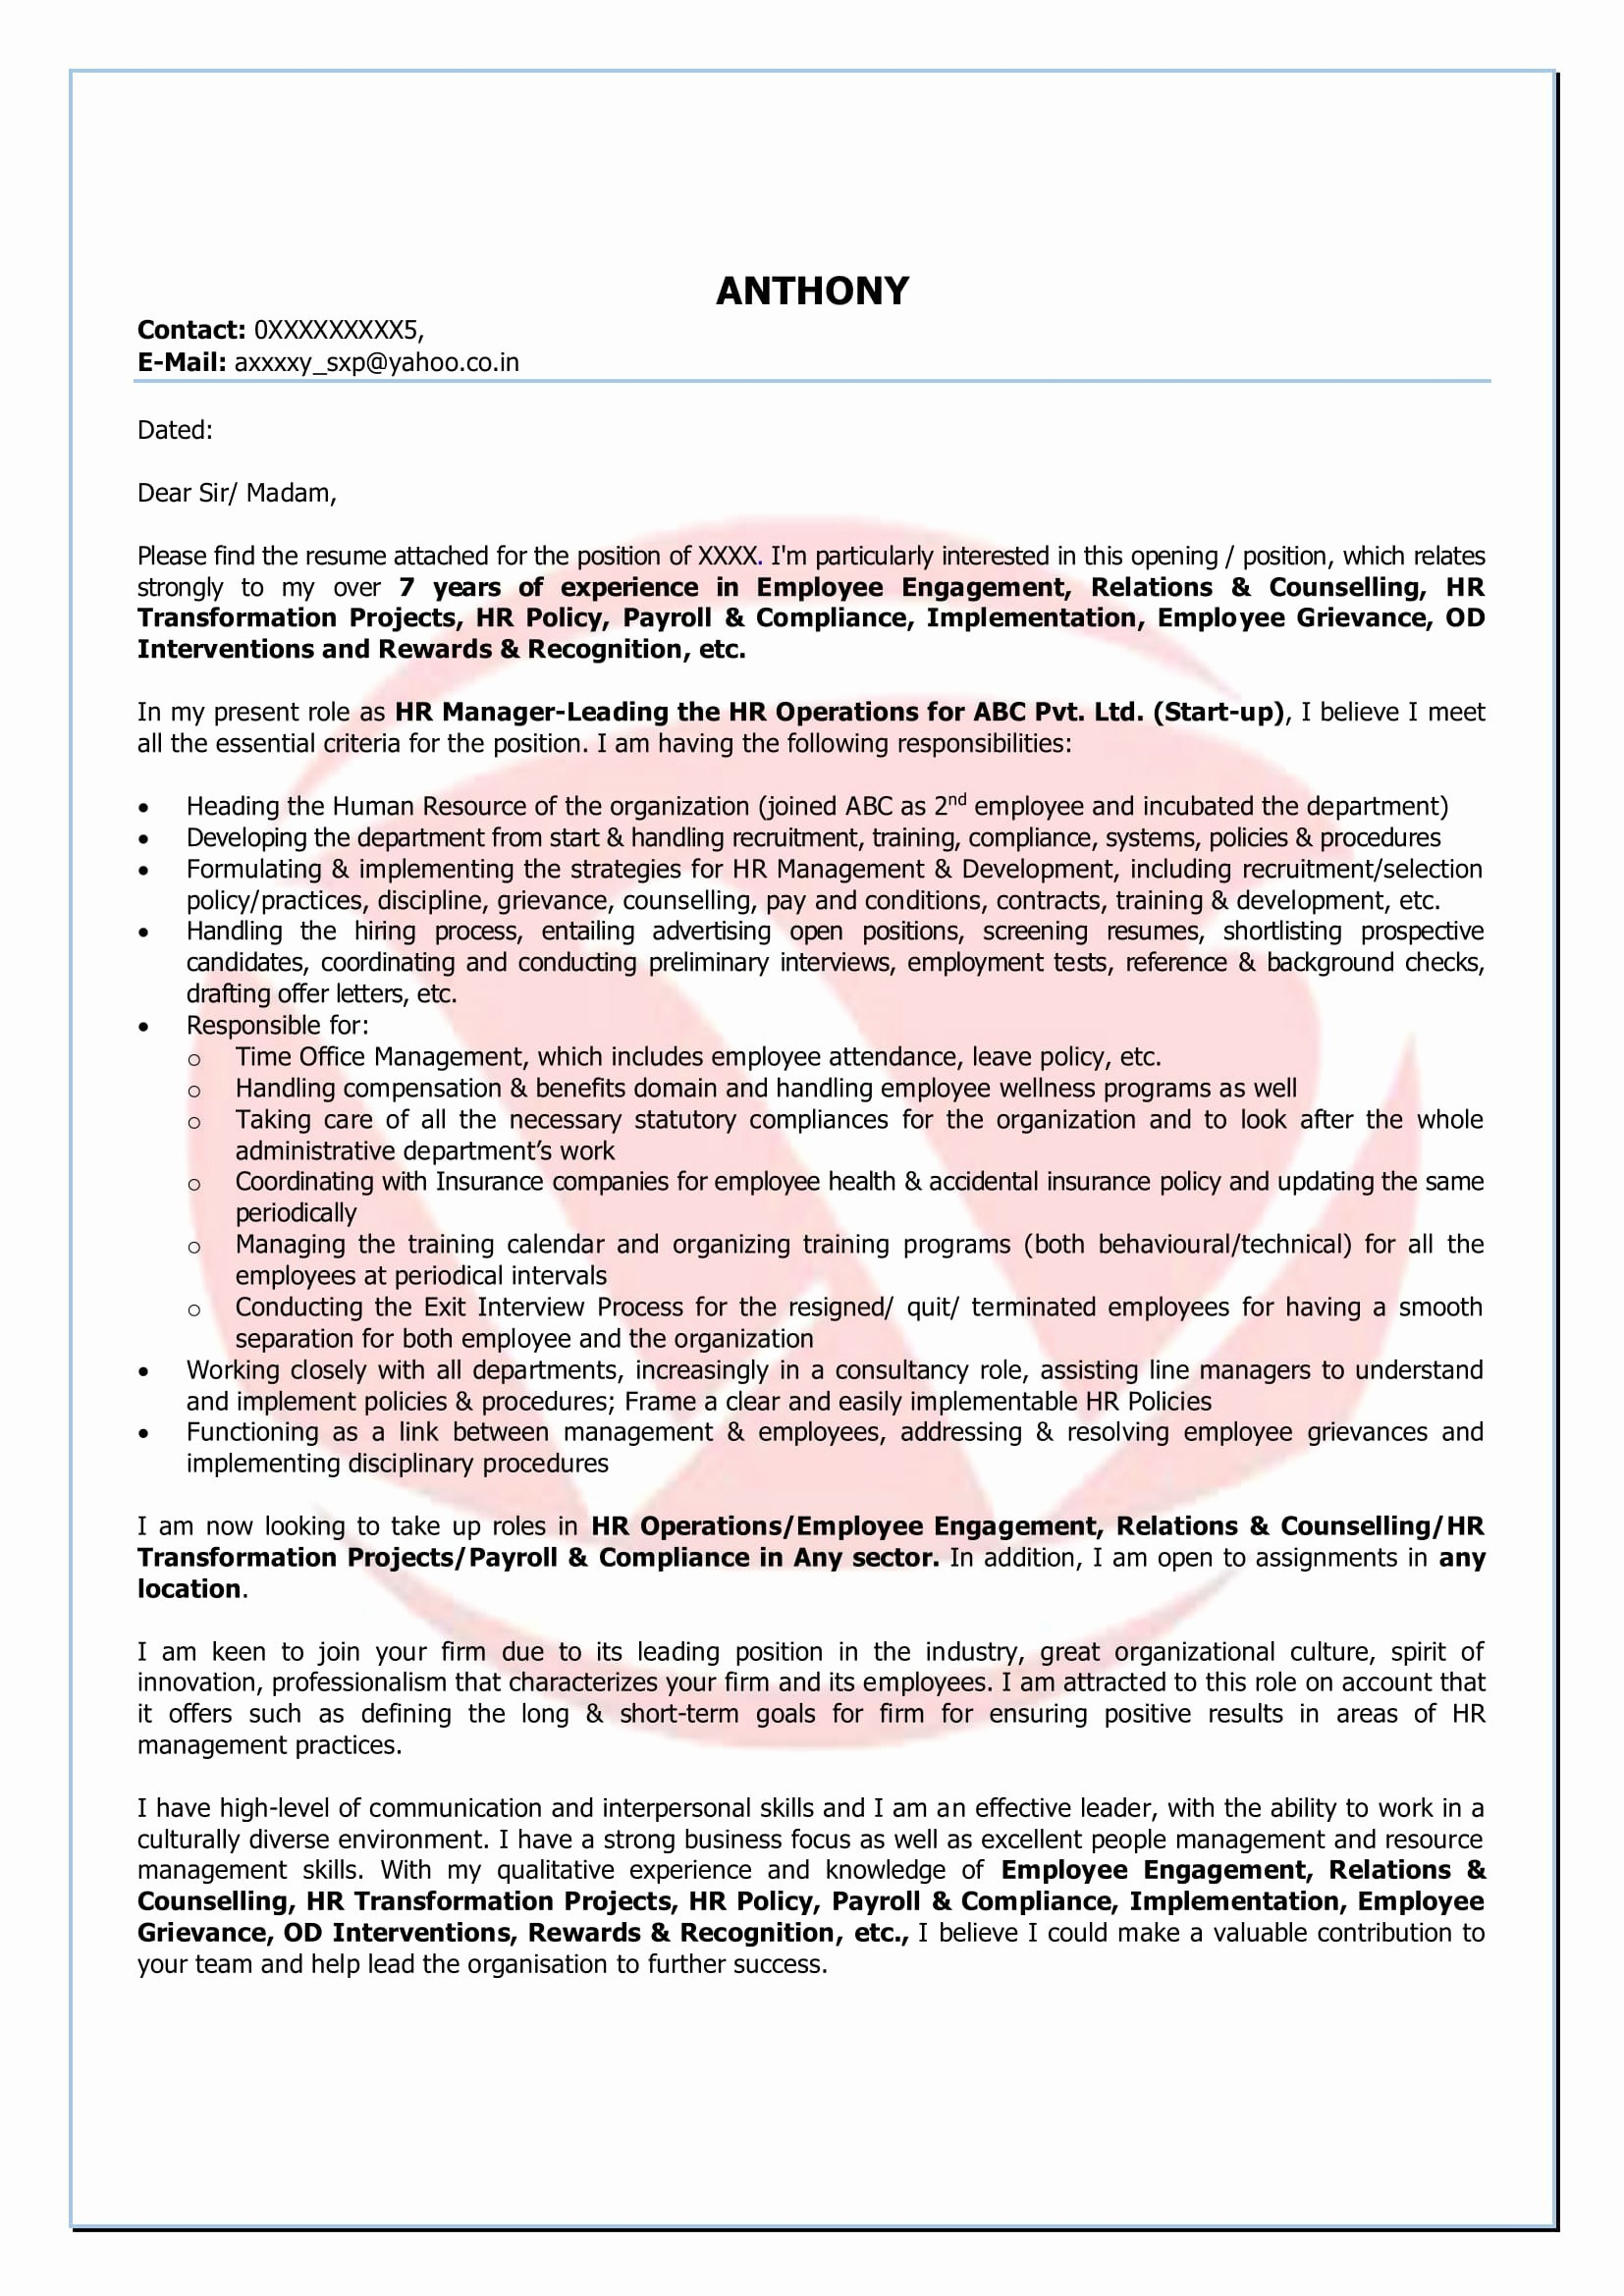 Relocation Cover Letter Template - Cover Letter Willing to Relocate Sample Awesome Job Application